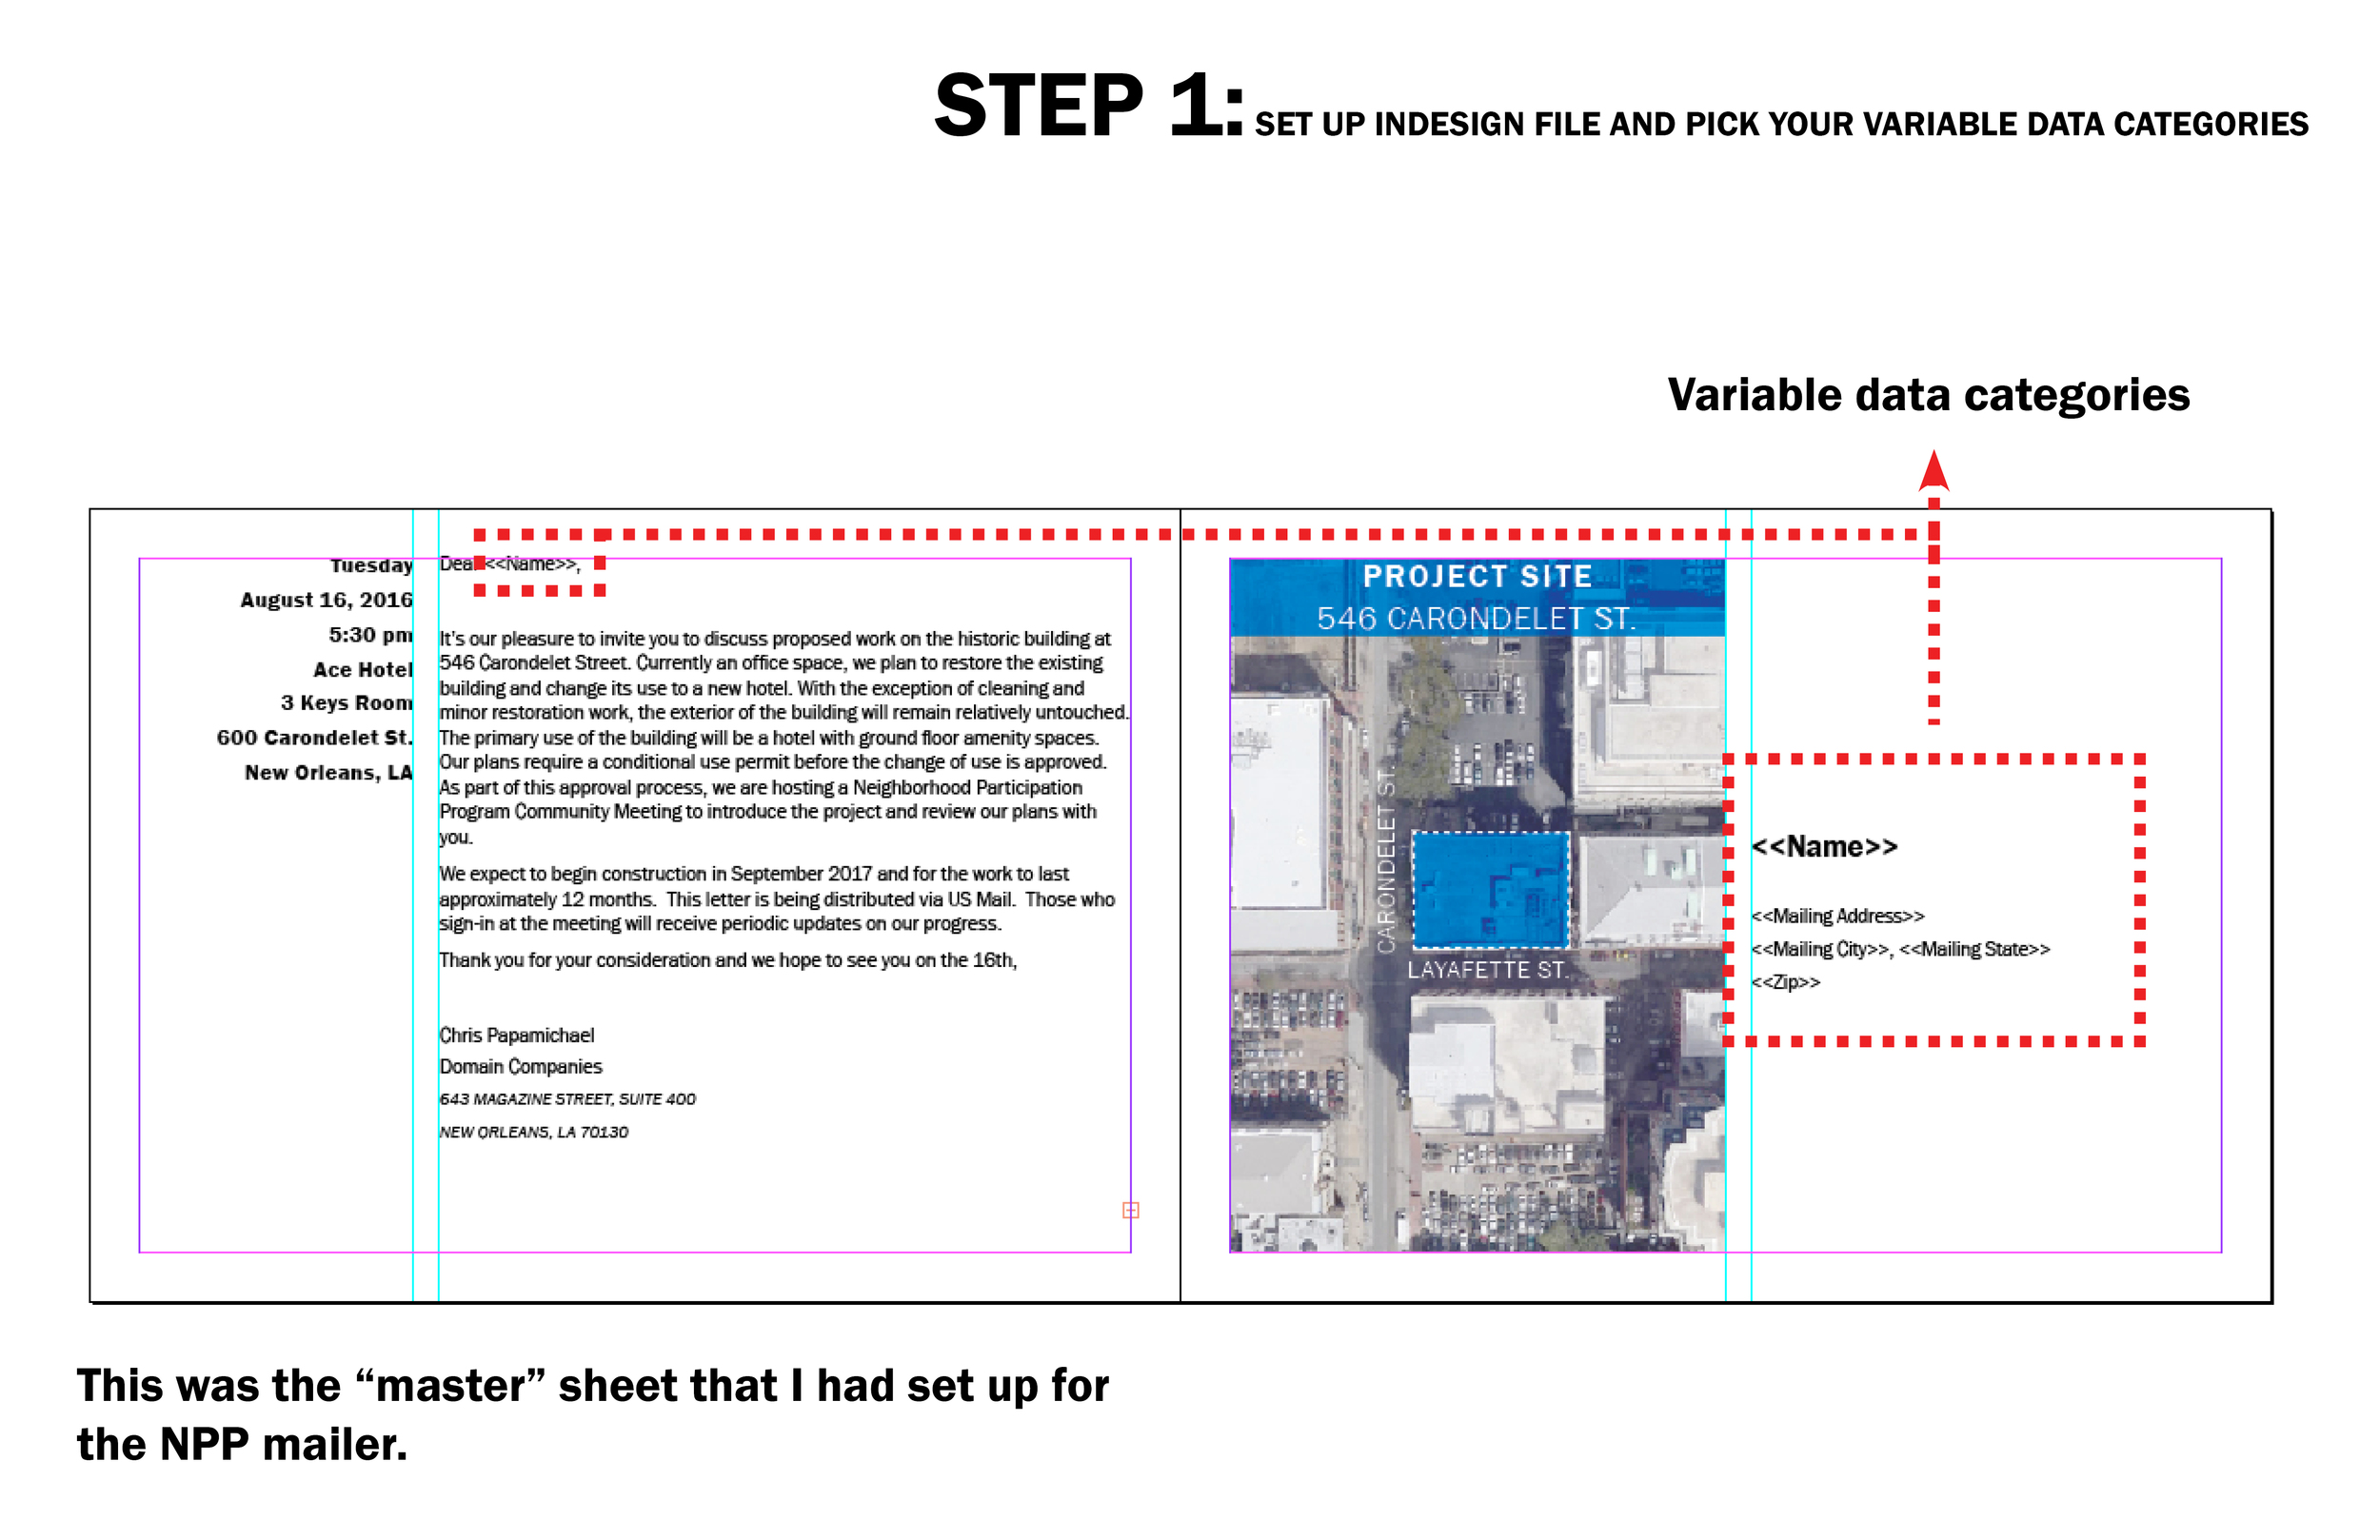 """This tutorial highlights the workflow between Excel and inDesign. This is similar to Word's ancient MailMerge feature in that you can have variable data on the same """"master"""" sheet, but using inDesign allows you to maintain the graphic consistency you desire.  I was tasked to prepare a letter invitation for a Neighborhood Participation Program (NPP) meeting. Given that there were 600+ names and address to send to, I didn't want to manually copy and paste the data into the inDesign file. Thus,DATA MERGE!"""